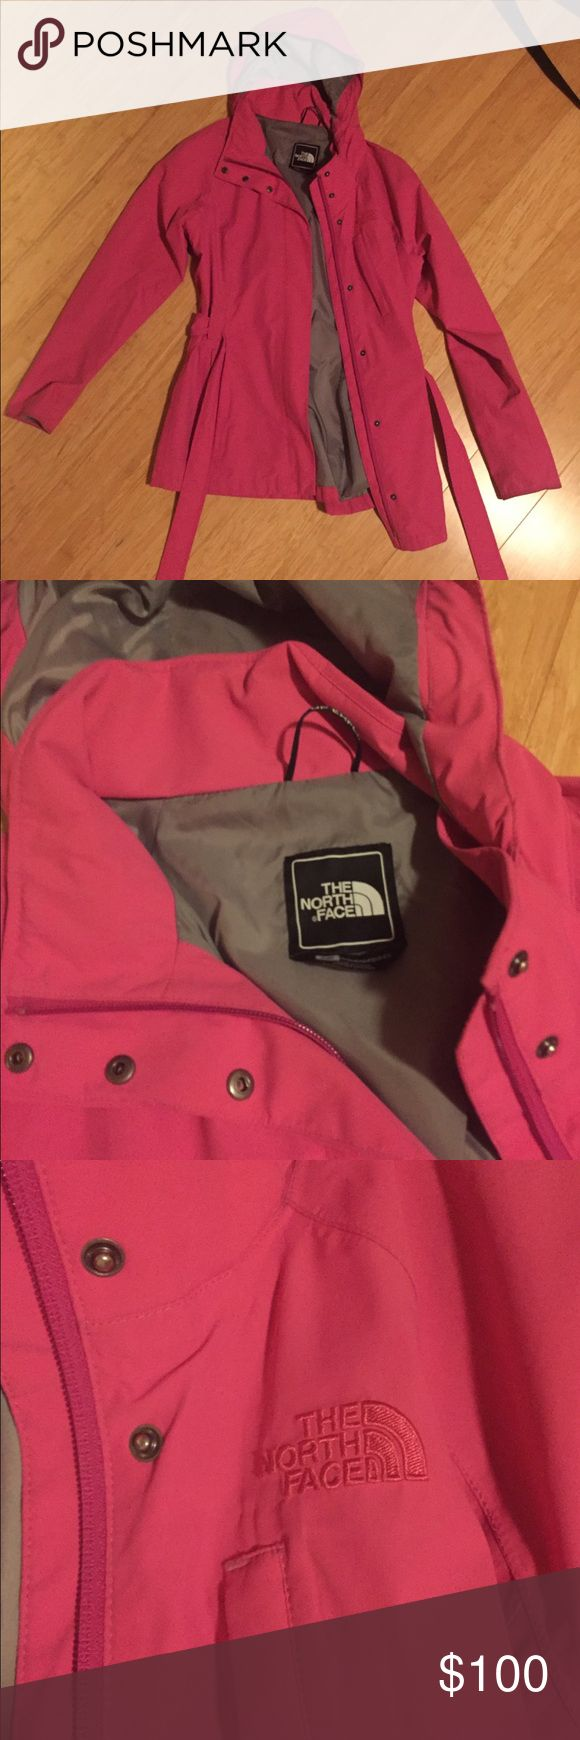 Pink Northface Rain Coat Trench style rain coat with sash. Lots of pockets for storage. Detachable hood. Waterproof. Superior quality. Lightly used but amazing condition. You will love it and you will stand out in a crowd! The North Face Jackets & Coats Trench Coats